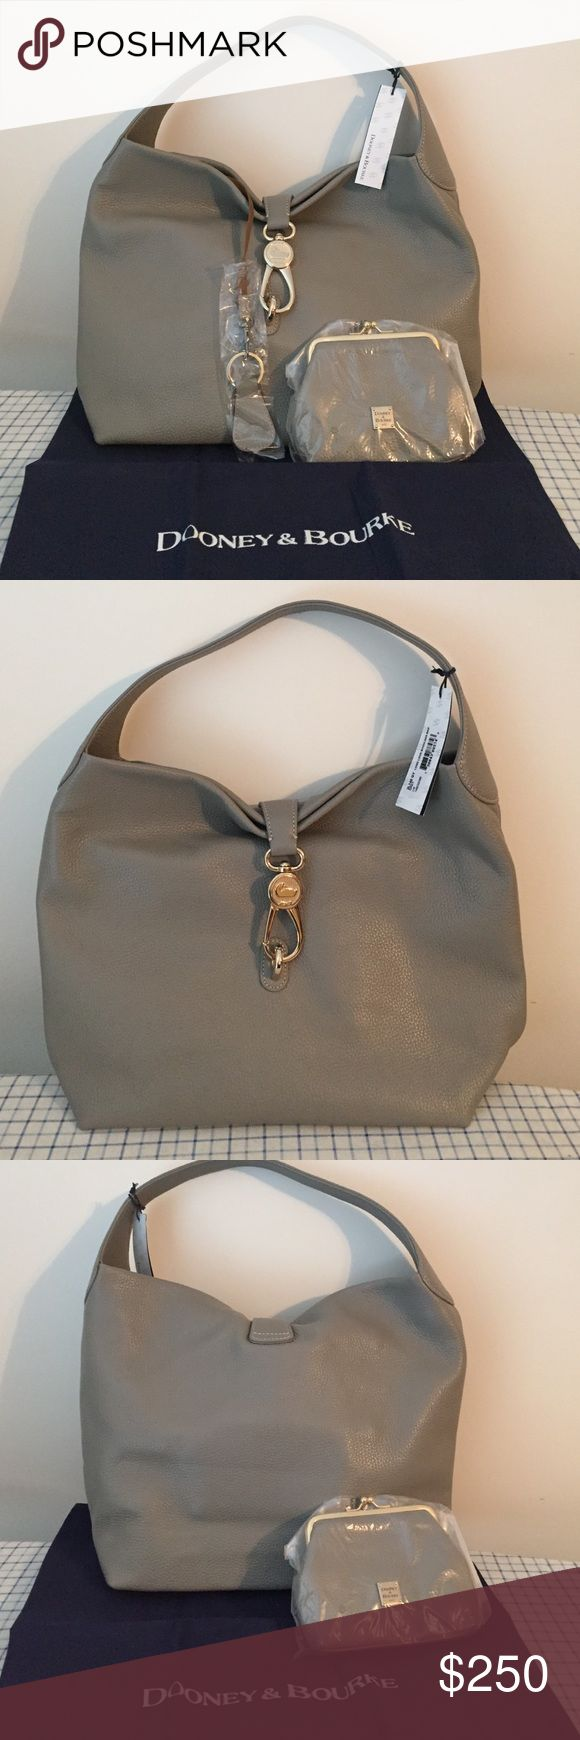 """Dooney & Bourke Logo Lock Shoulder Bag Includes hobo, matching coin purse with kiss lock closure, and key fob Contrast stitching, reversible goldtone hardware lock closure, four metal feet Full signature red check interior lining, three front-wall slip pockets (one with a button tab closure), back-wall zip pocket, coin purse pocket, and dog leash-style key clip Approximate measurements: Hobo 17""""W x 12""""H x 5""""D with an 8"""" strap drop; weighs 2 lbs, 4 oz; Coin purse 6""""W x 5""""H x 1""""D Dooney…"""